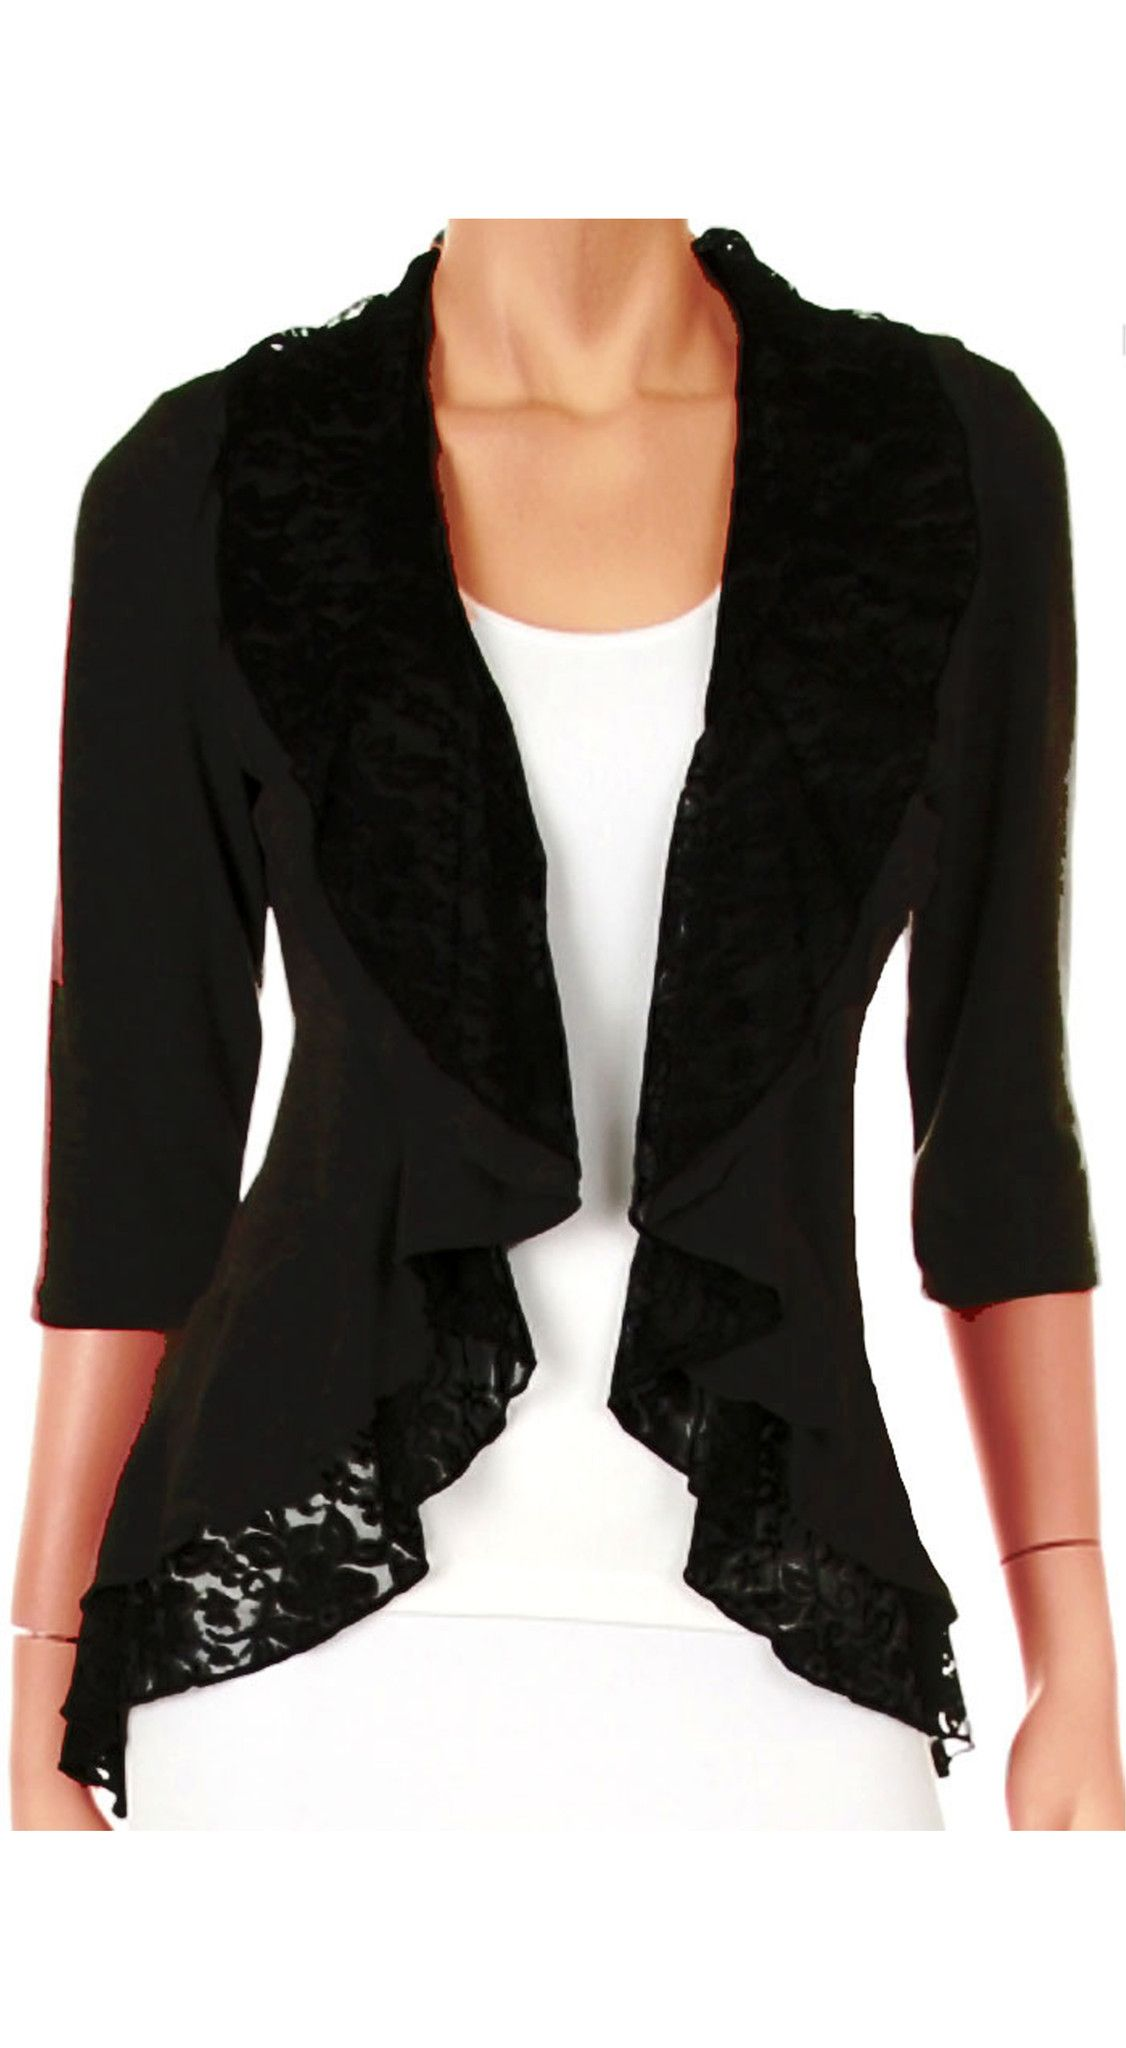 Plus Size Cardigan Black Lace Layered New Womens Sweater Top Shirt ...